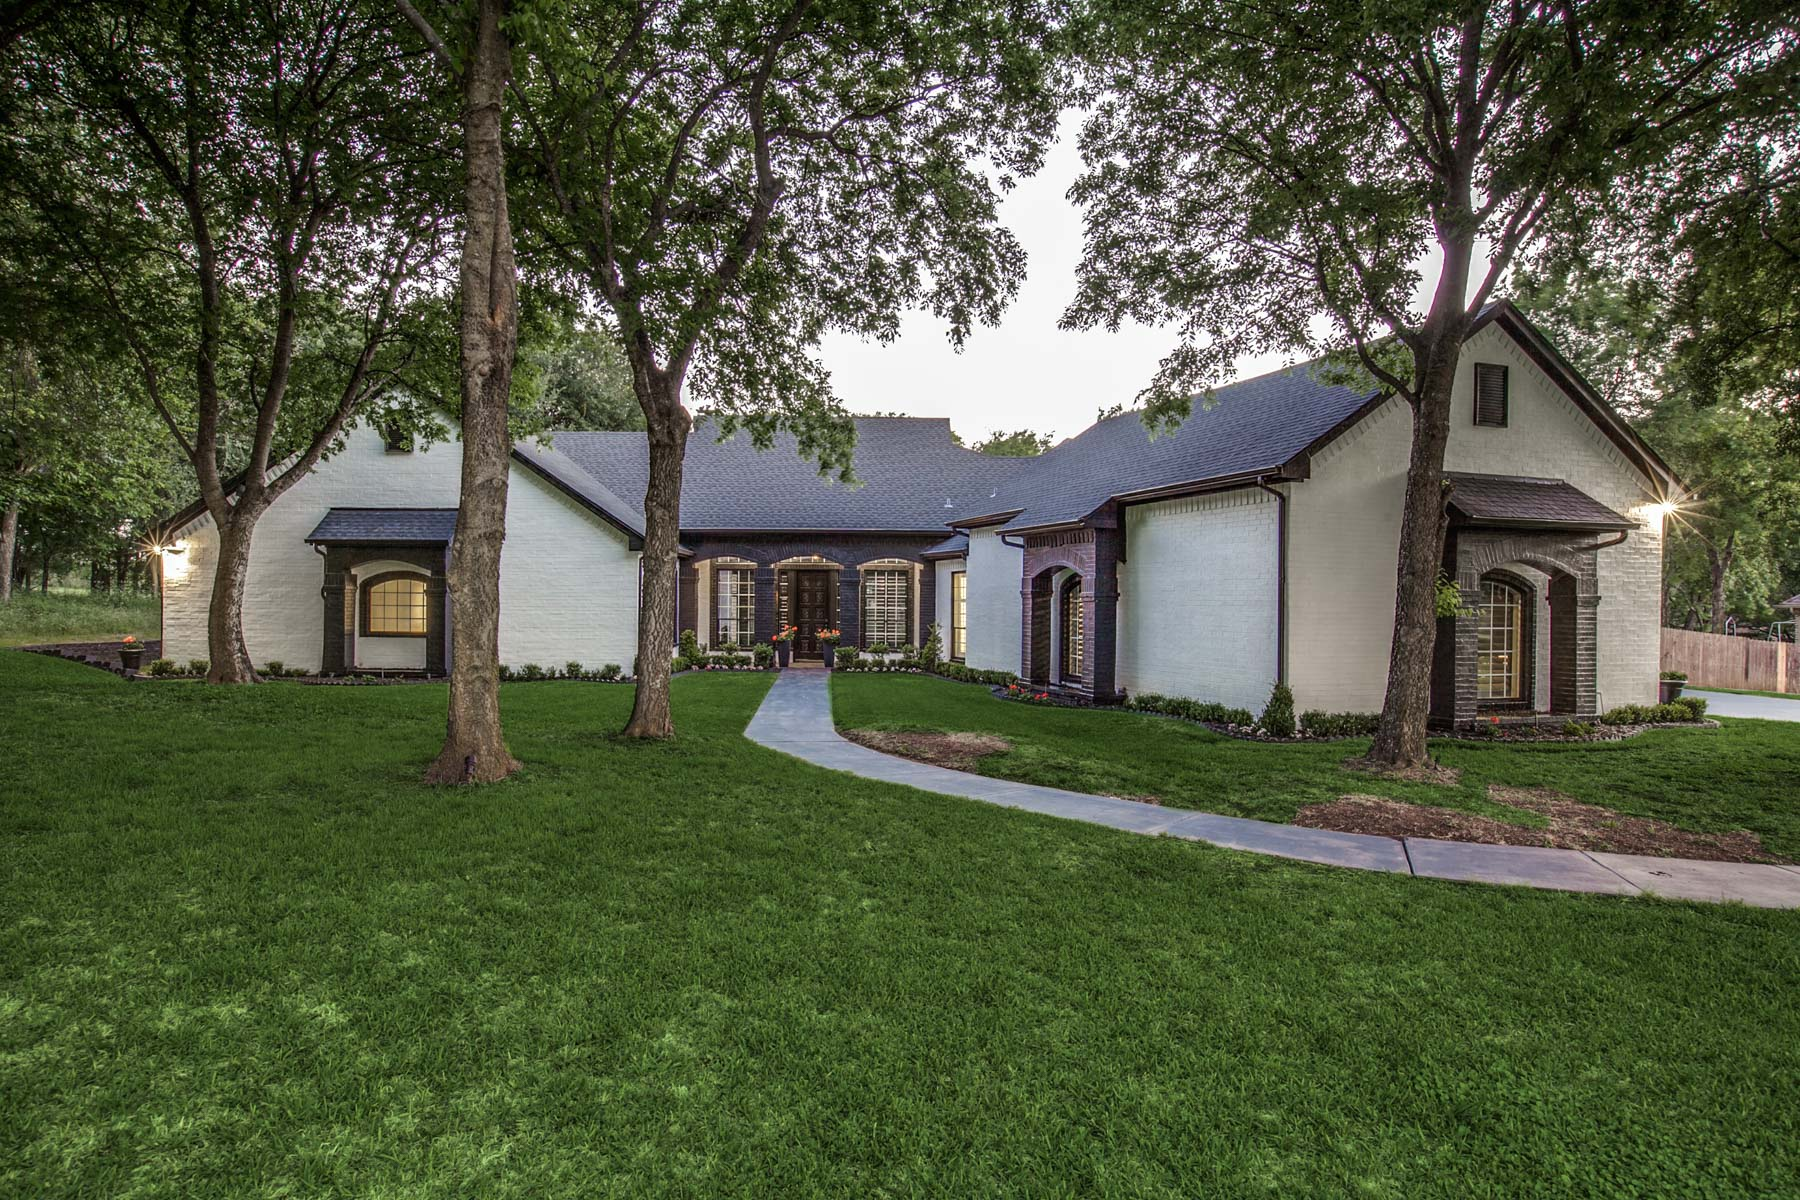 Single Family Home for Sale at Stunning Home Lake Ridge 2708 Waters Edge Dr Cedar Hill, Texas 75104 United States